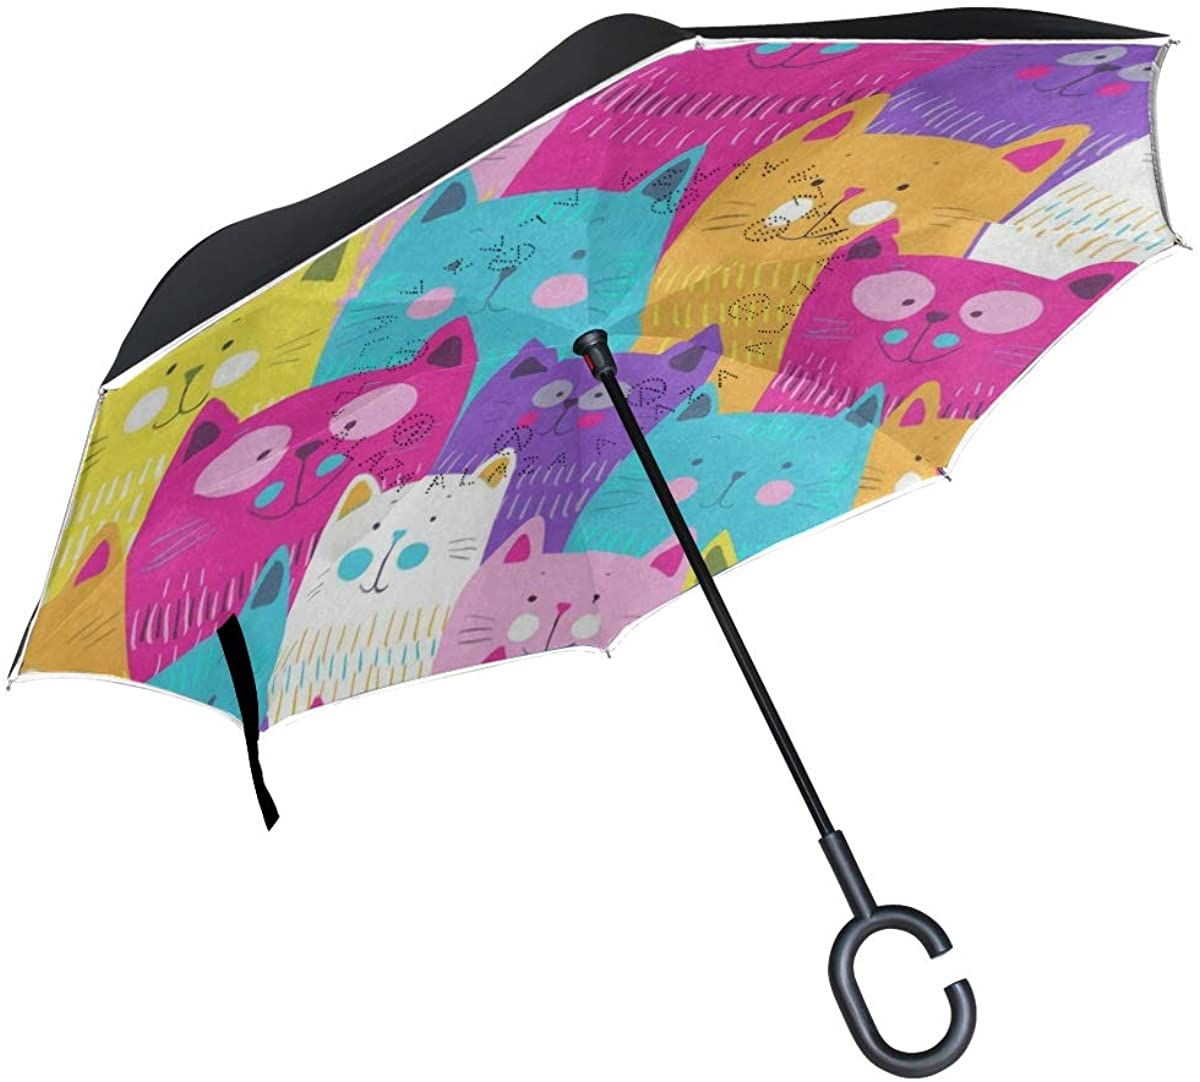 Double Layer Inverted Umbrella Cars Reverse Umbrella, Windproof UV Protection for Car Rain Outdoor with C-Shaped Handle